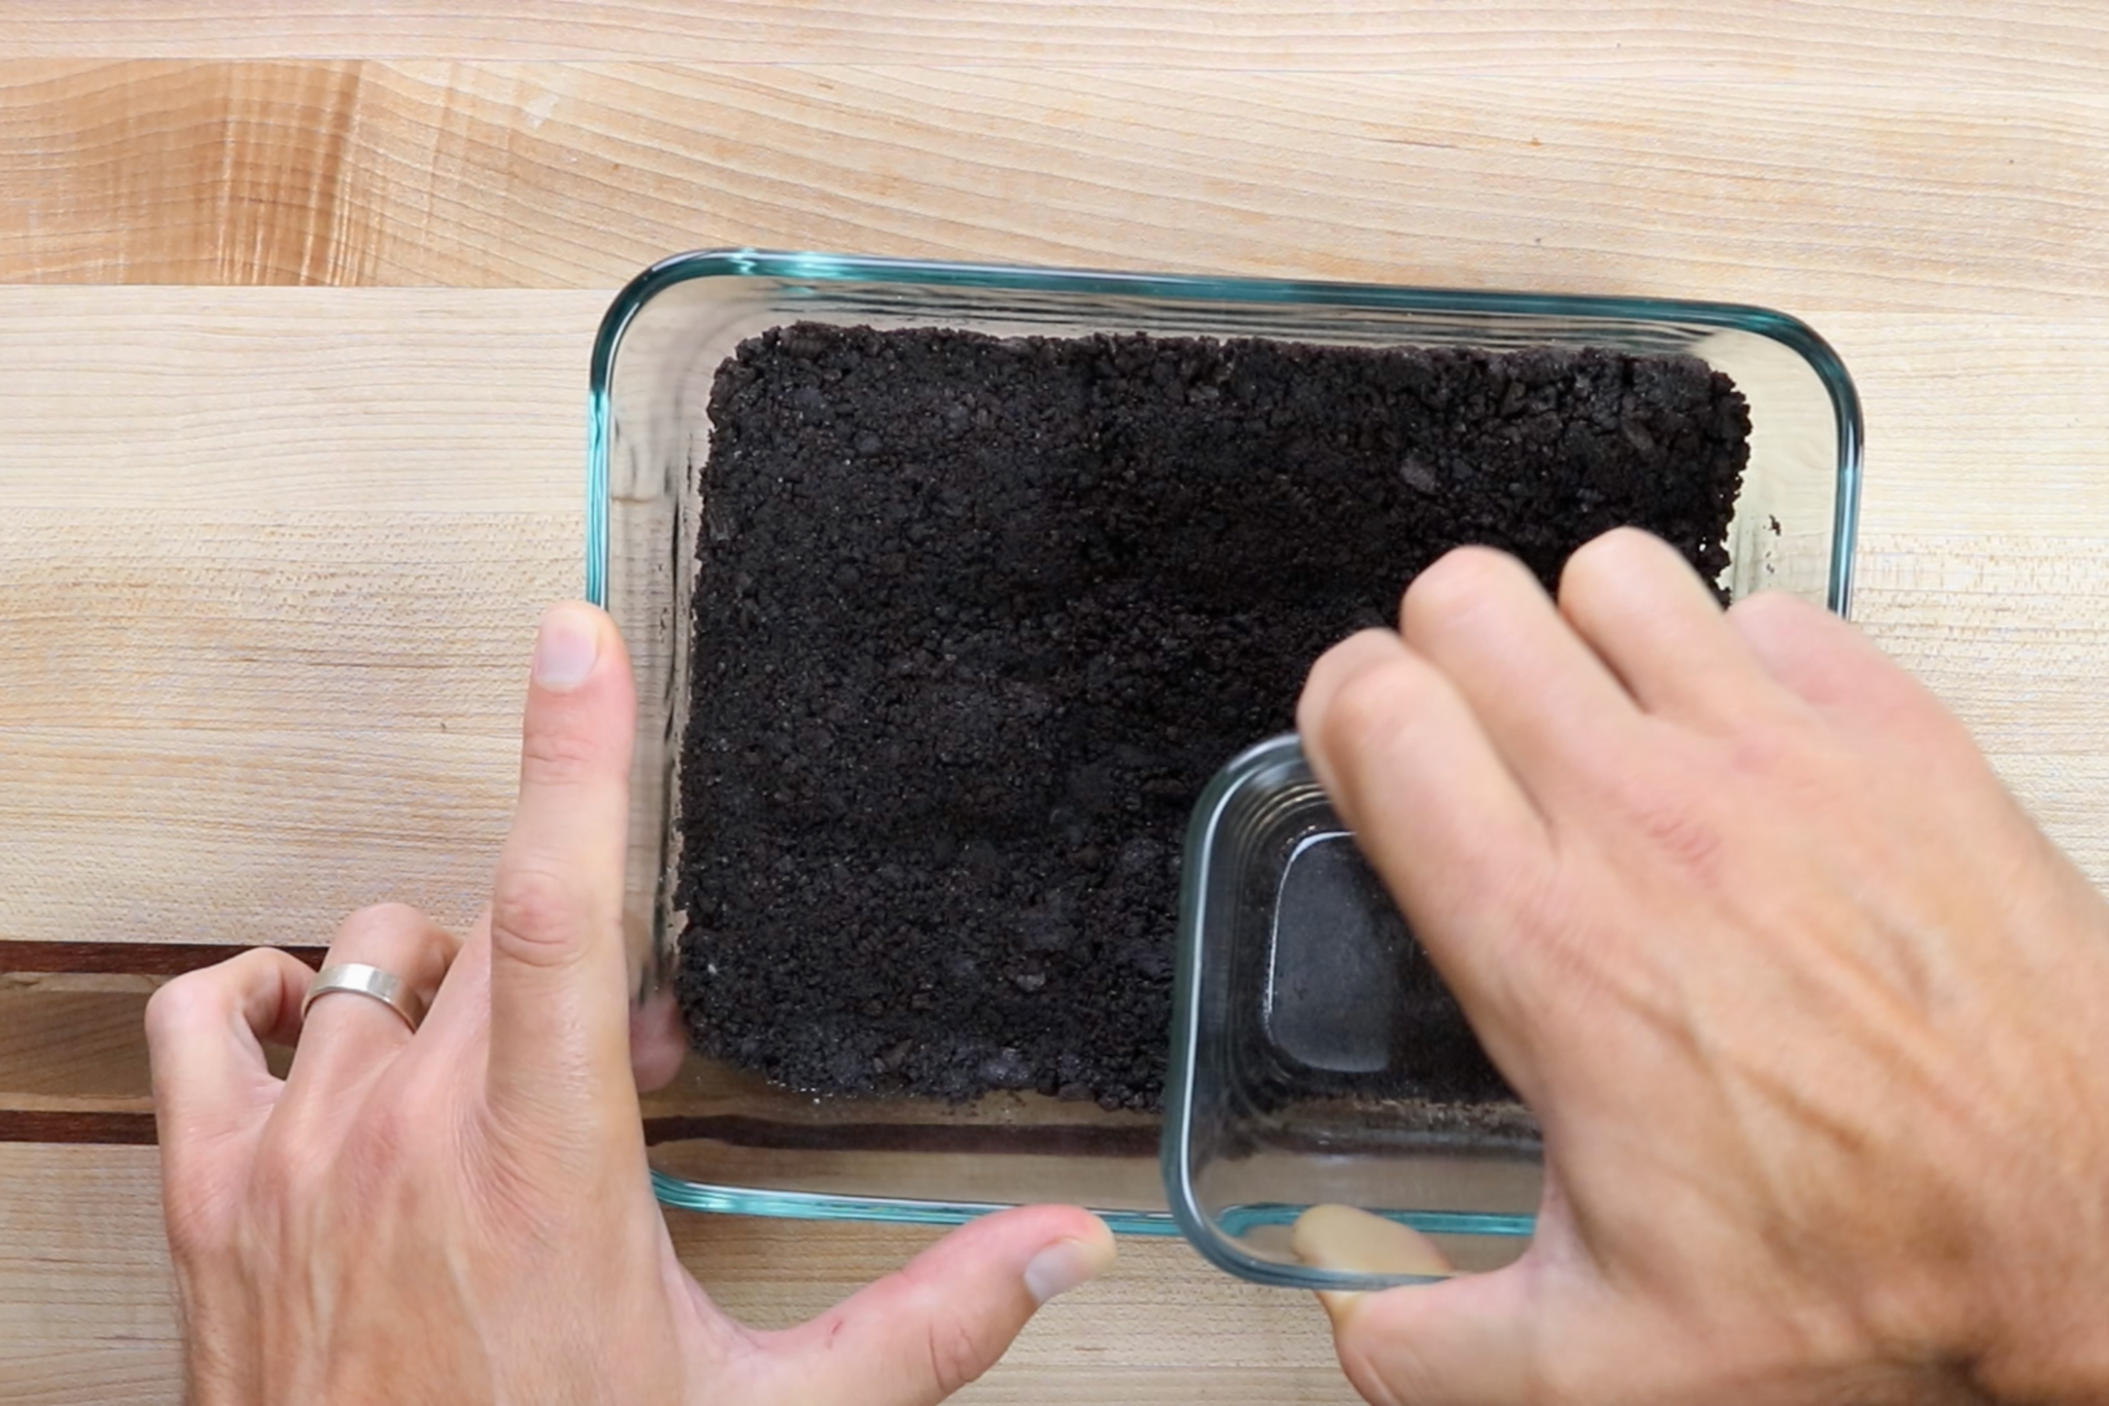 4. Place 1/2 of the Oreo mixture in the bottom of the 6 cup rectangular glass dish and press down in a compacted layer. -